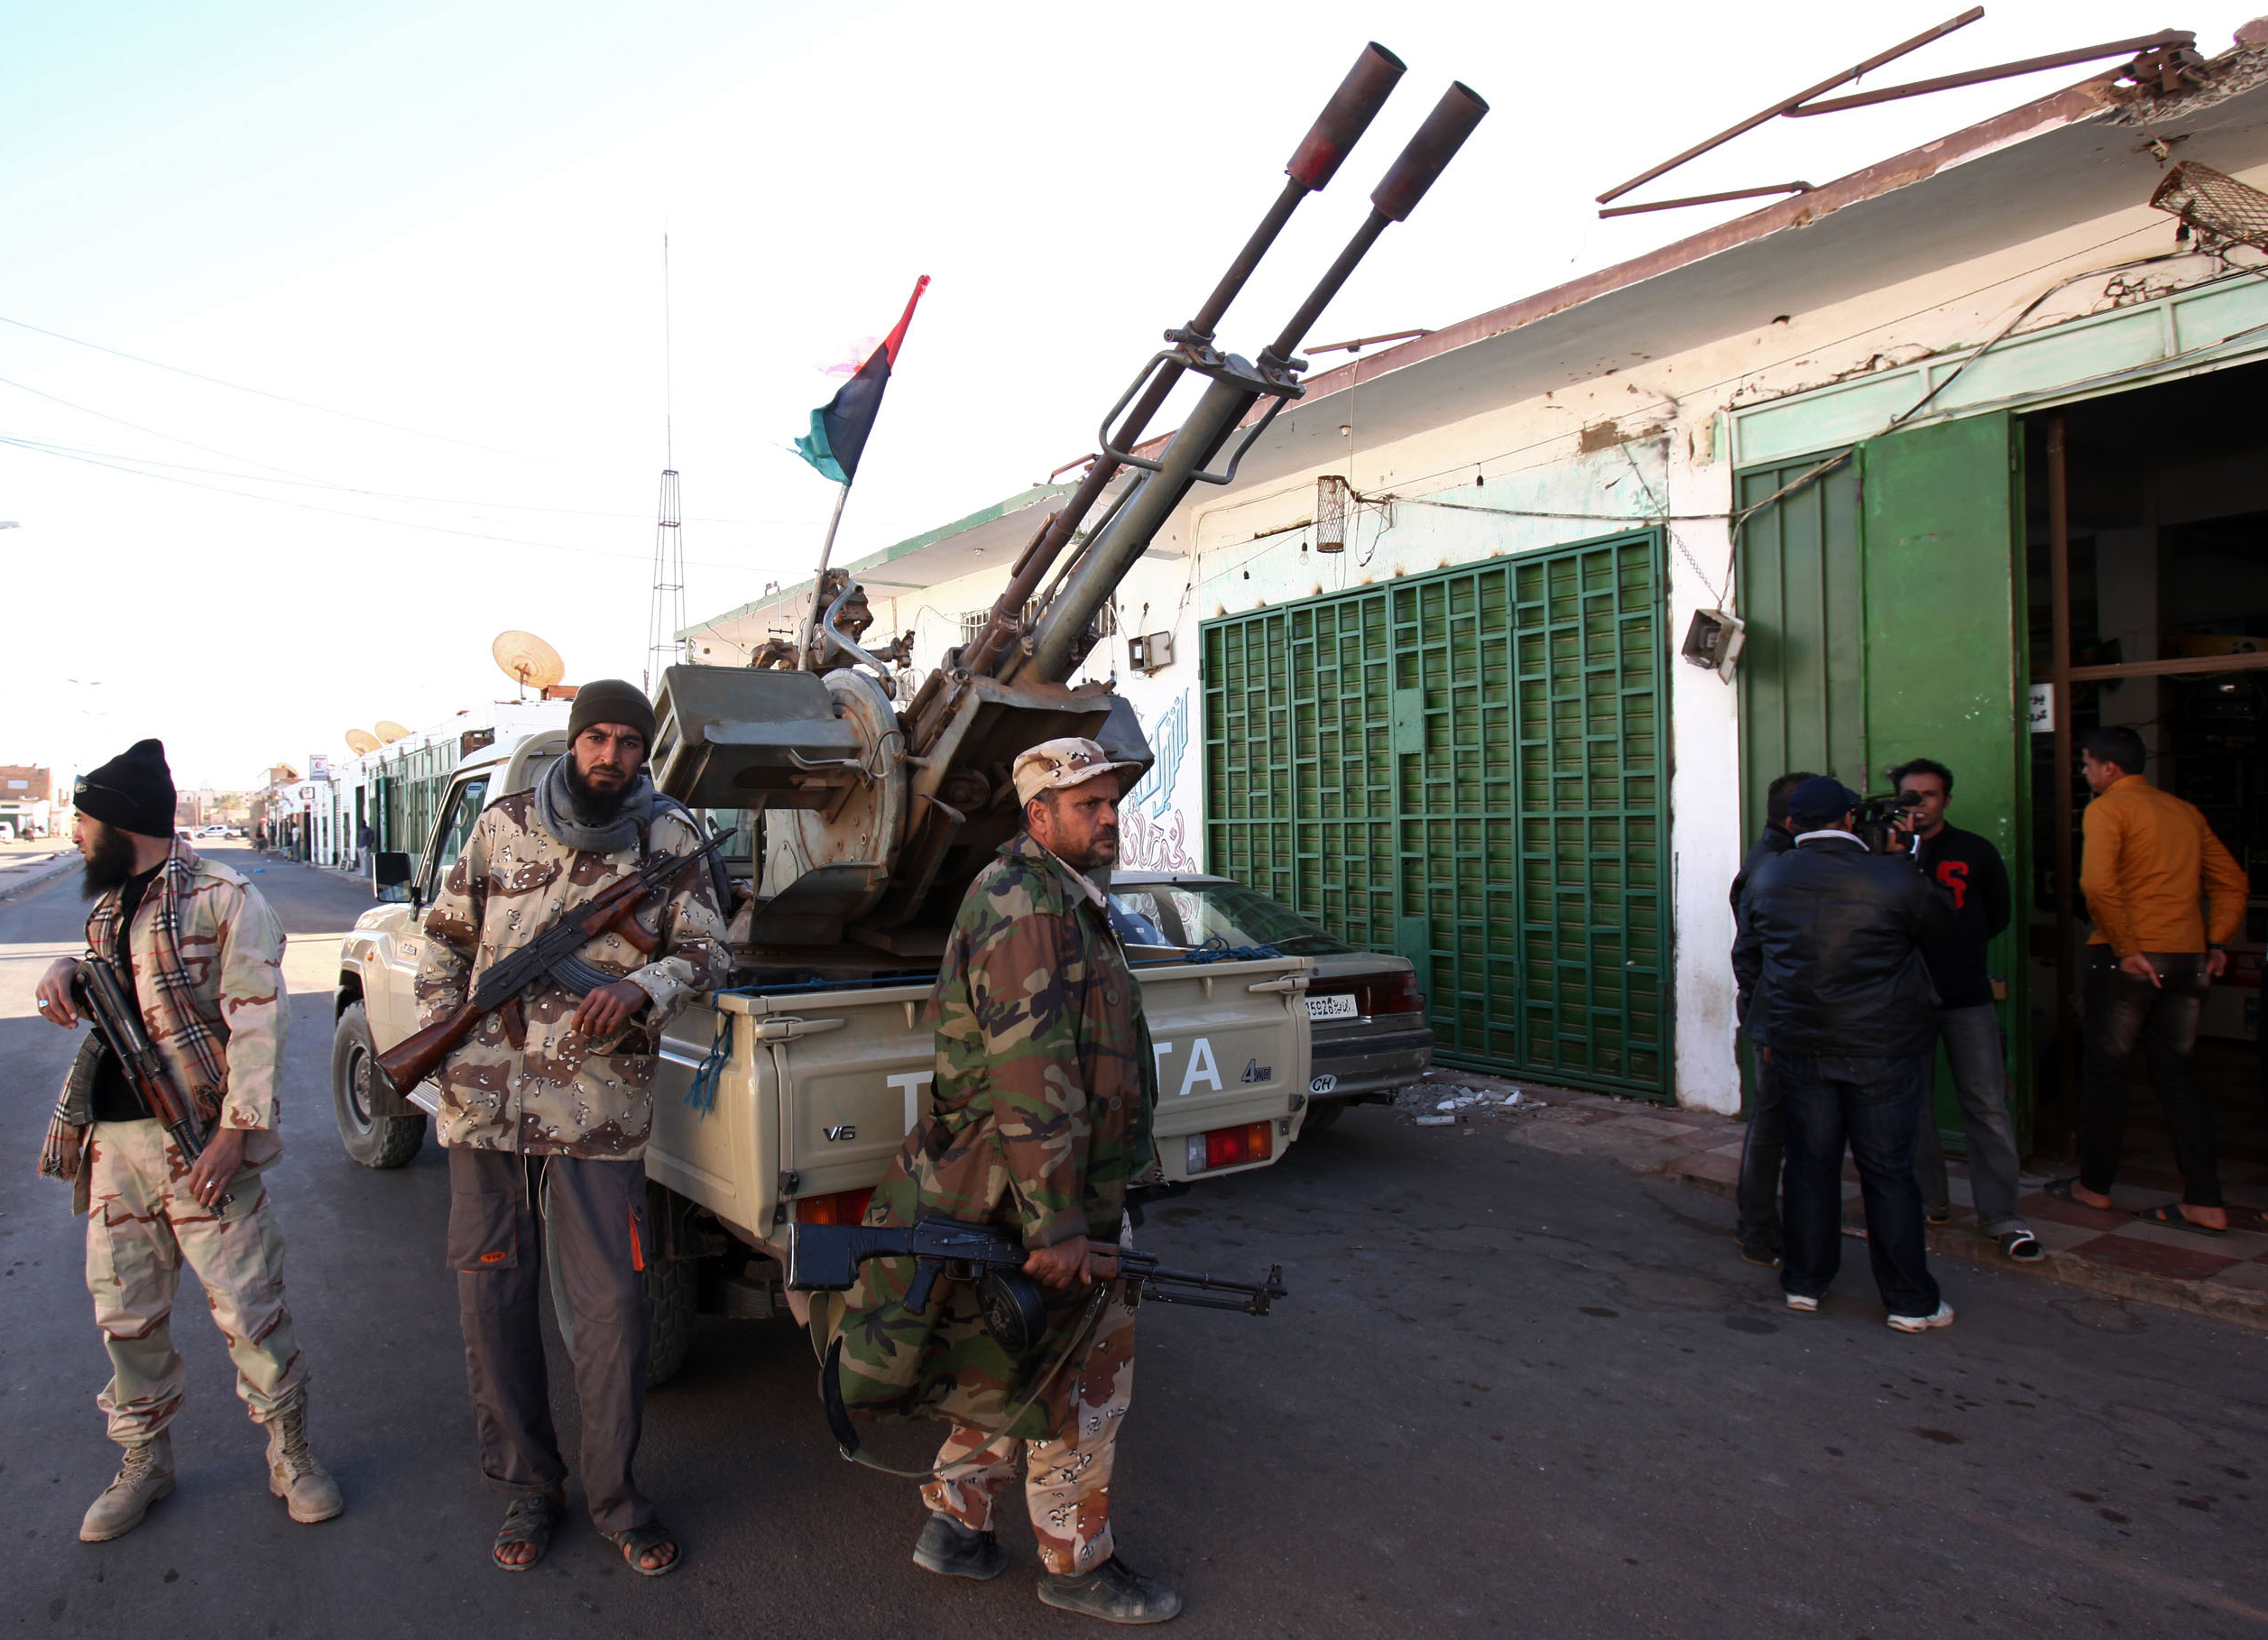 Libyan weapons falling into Somali al Qaeda's hands, U.S. official warns